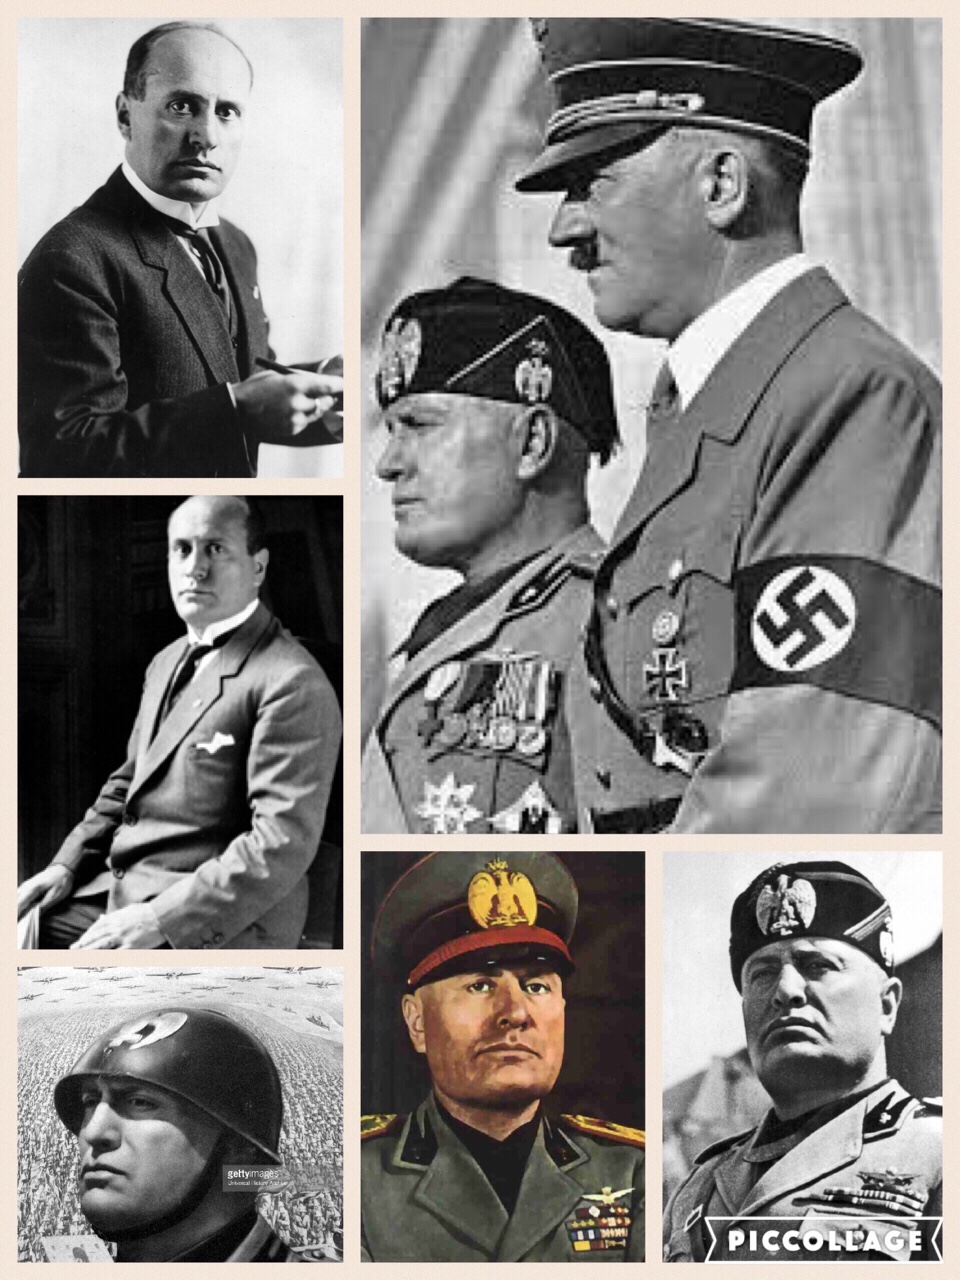 similarities and differences between benito mussolini and What is the difference between hitler and stalin adolf hitler was the nazi leader of germany during world war ii, and joseph stalin was the communist leader of the soviet union during world war ii though both men were harsh dictators, the ideologies they functioned under were different hitler was.